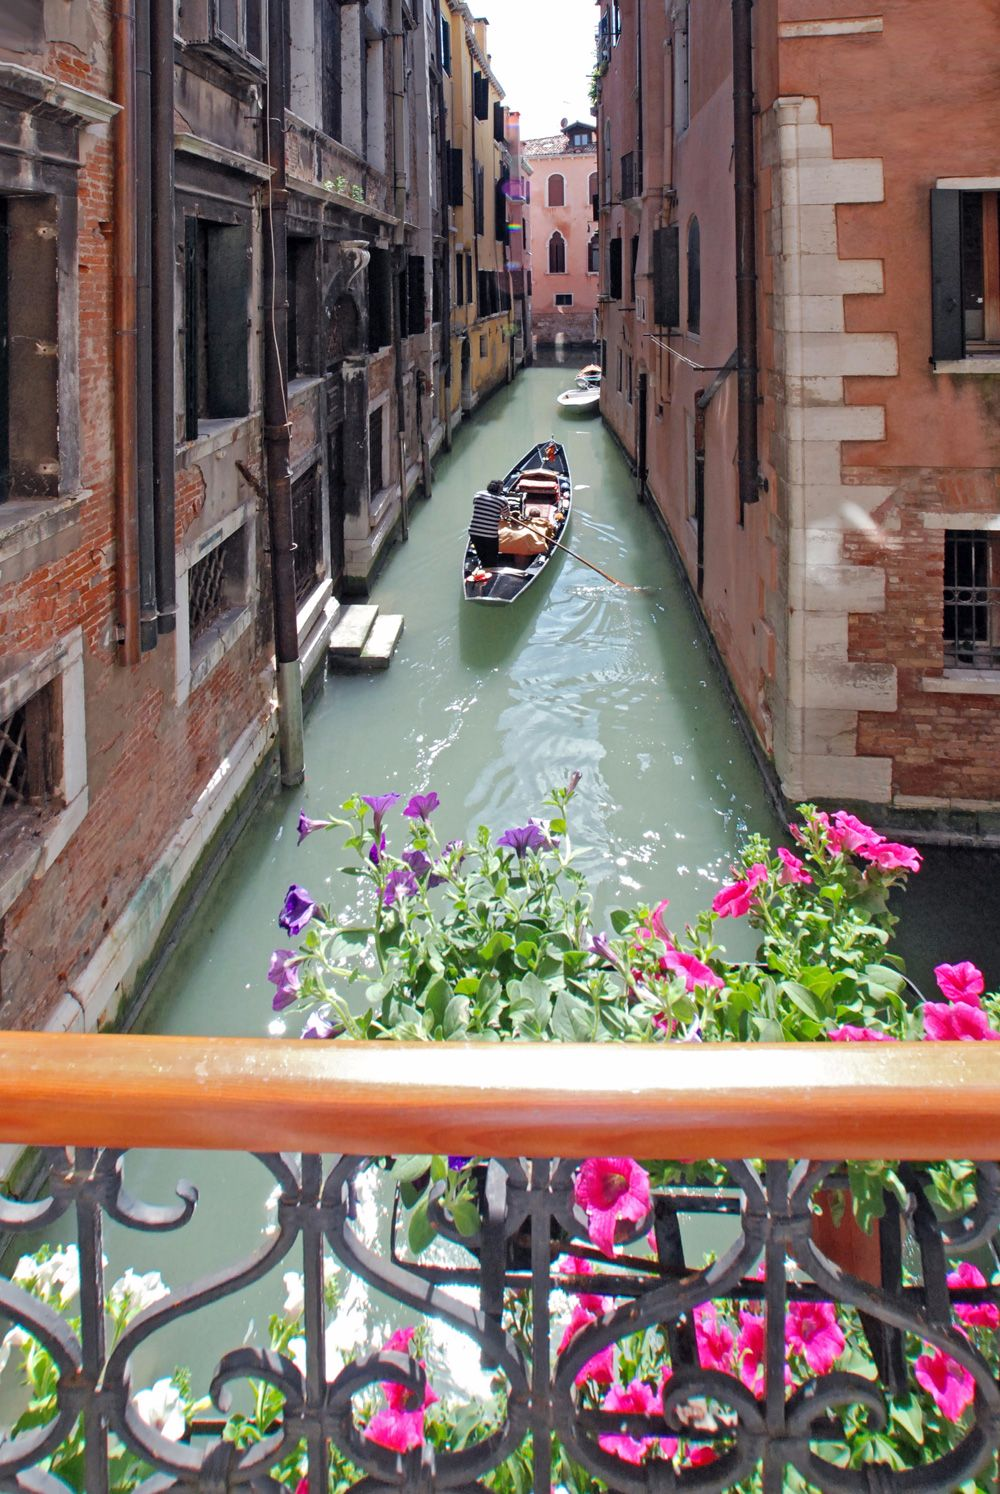 Gondola passing by, view from the balcony of the kitchen